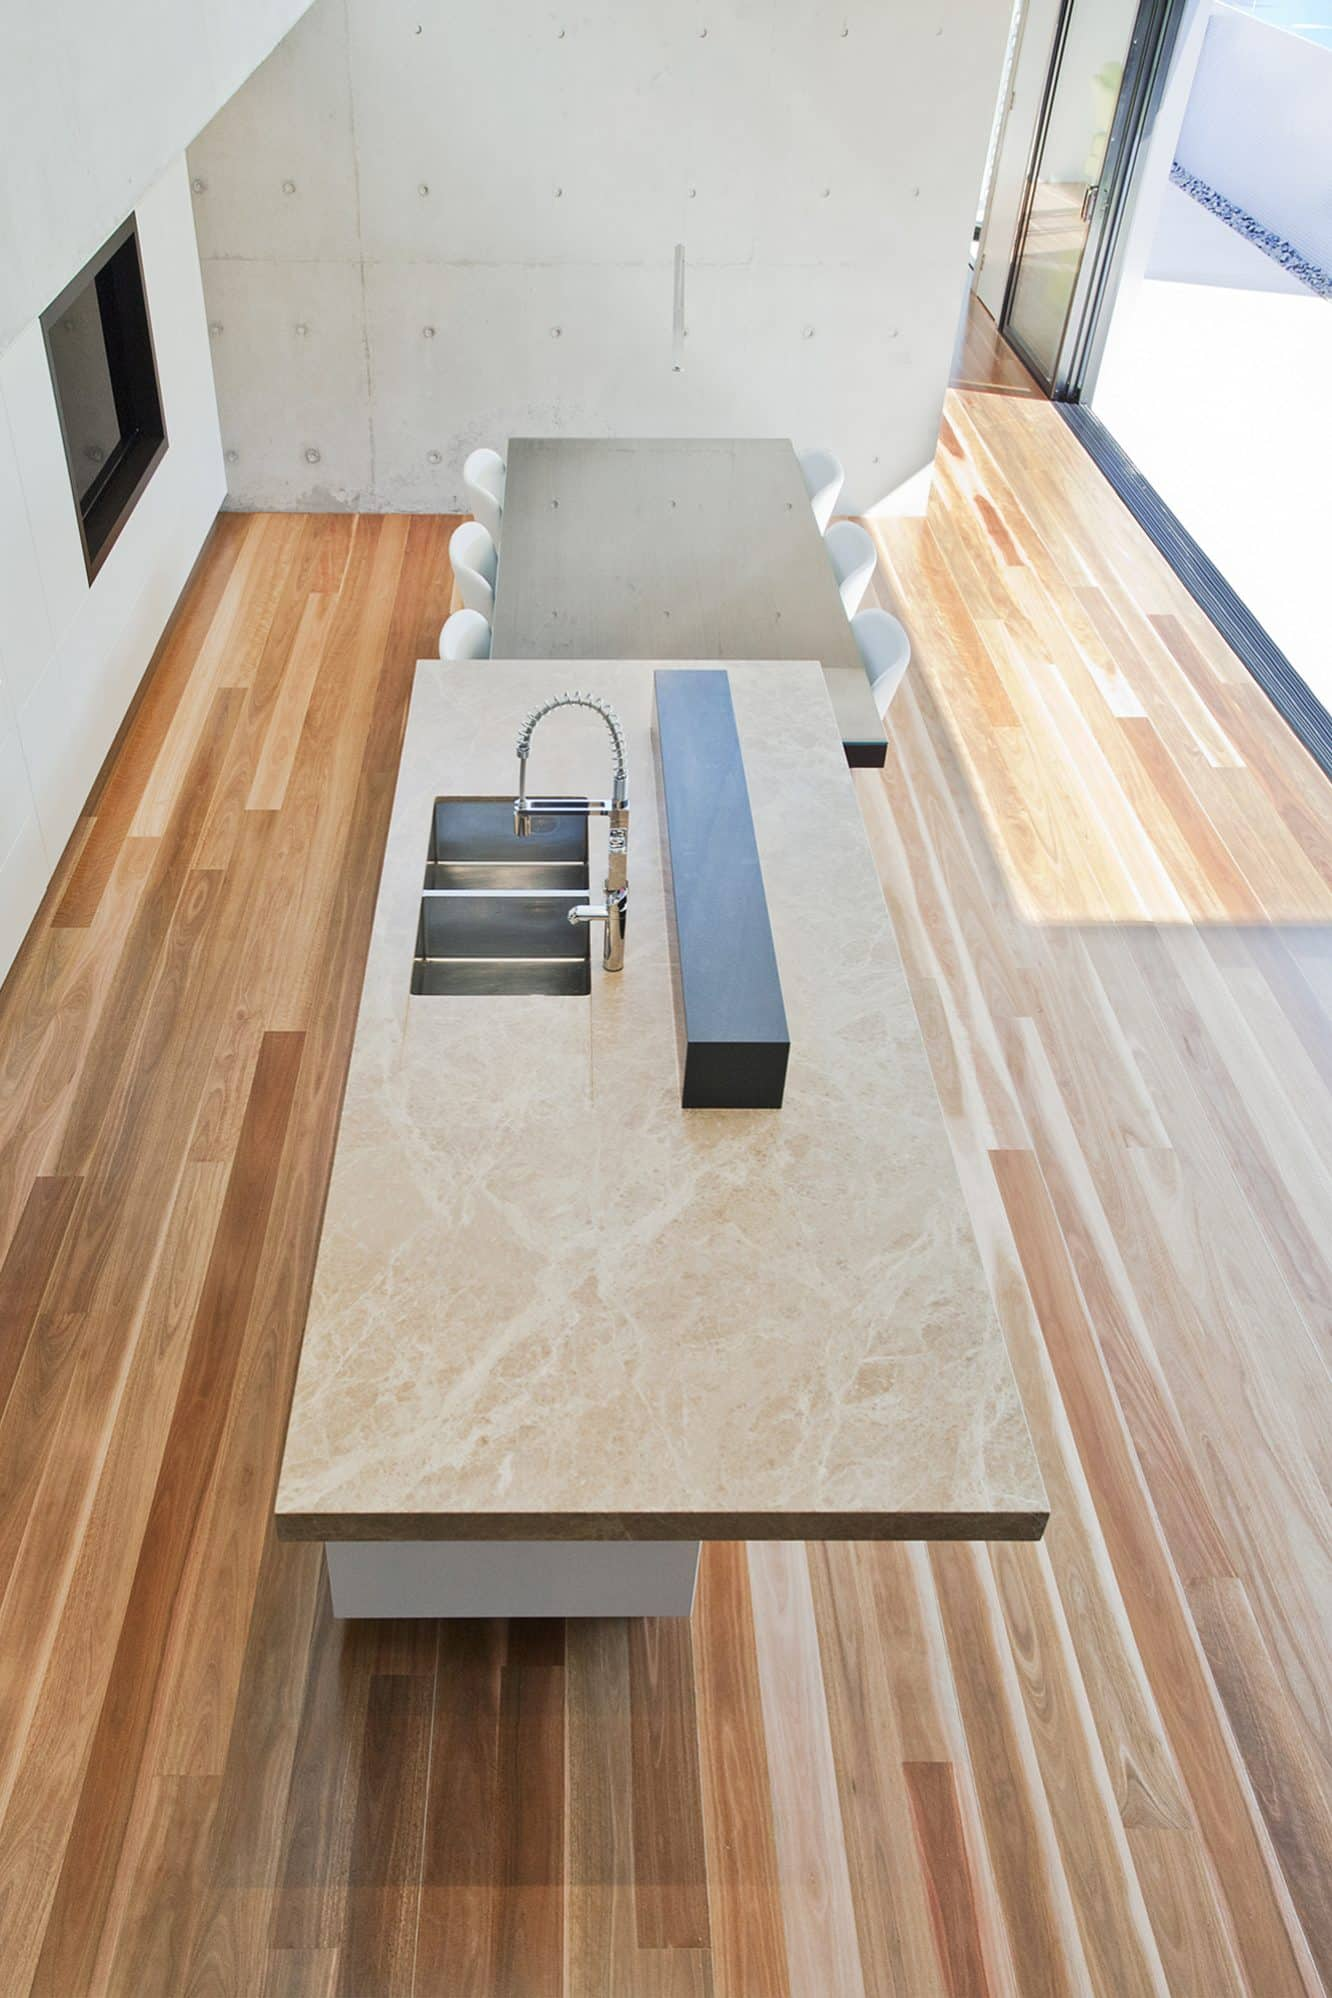 View of a kitchen benchtop from above